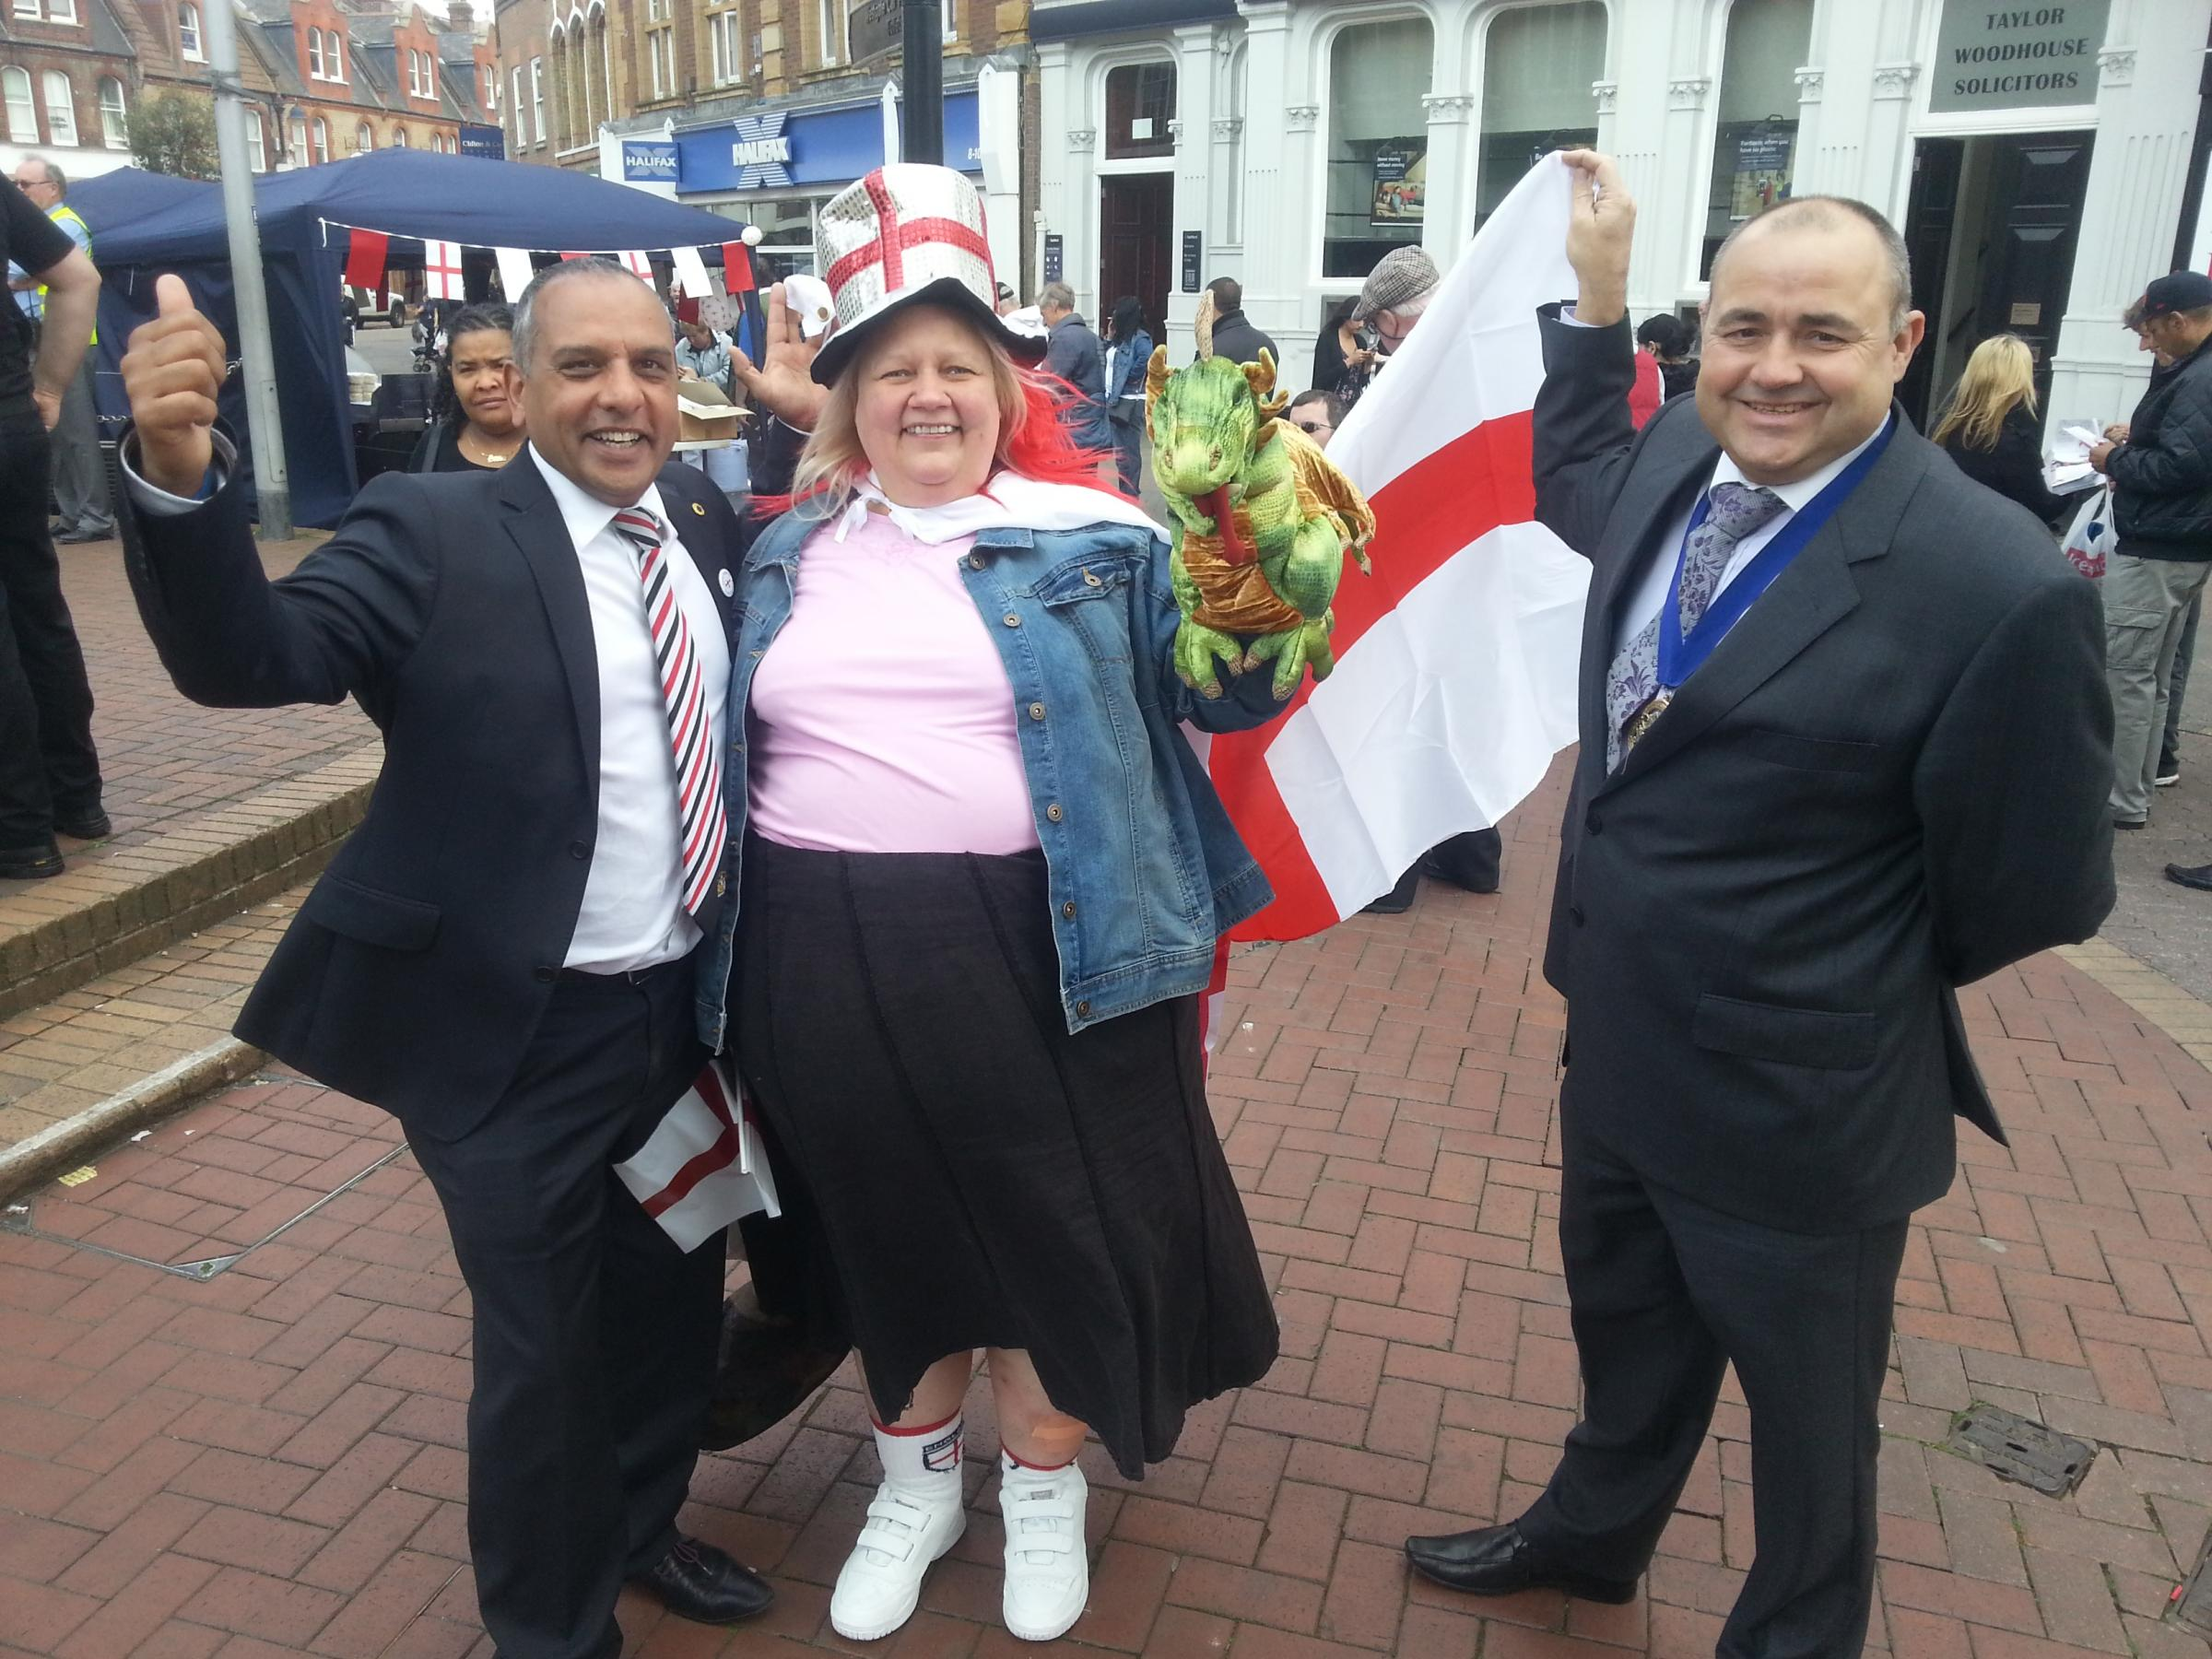 VIDEO AND PICTURES: St George's Day in Dartford and Gravesend